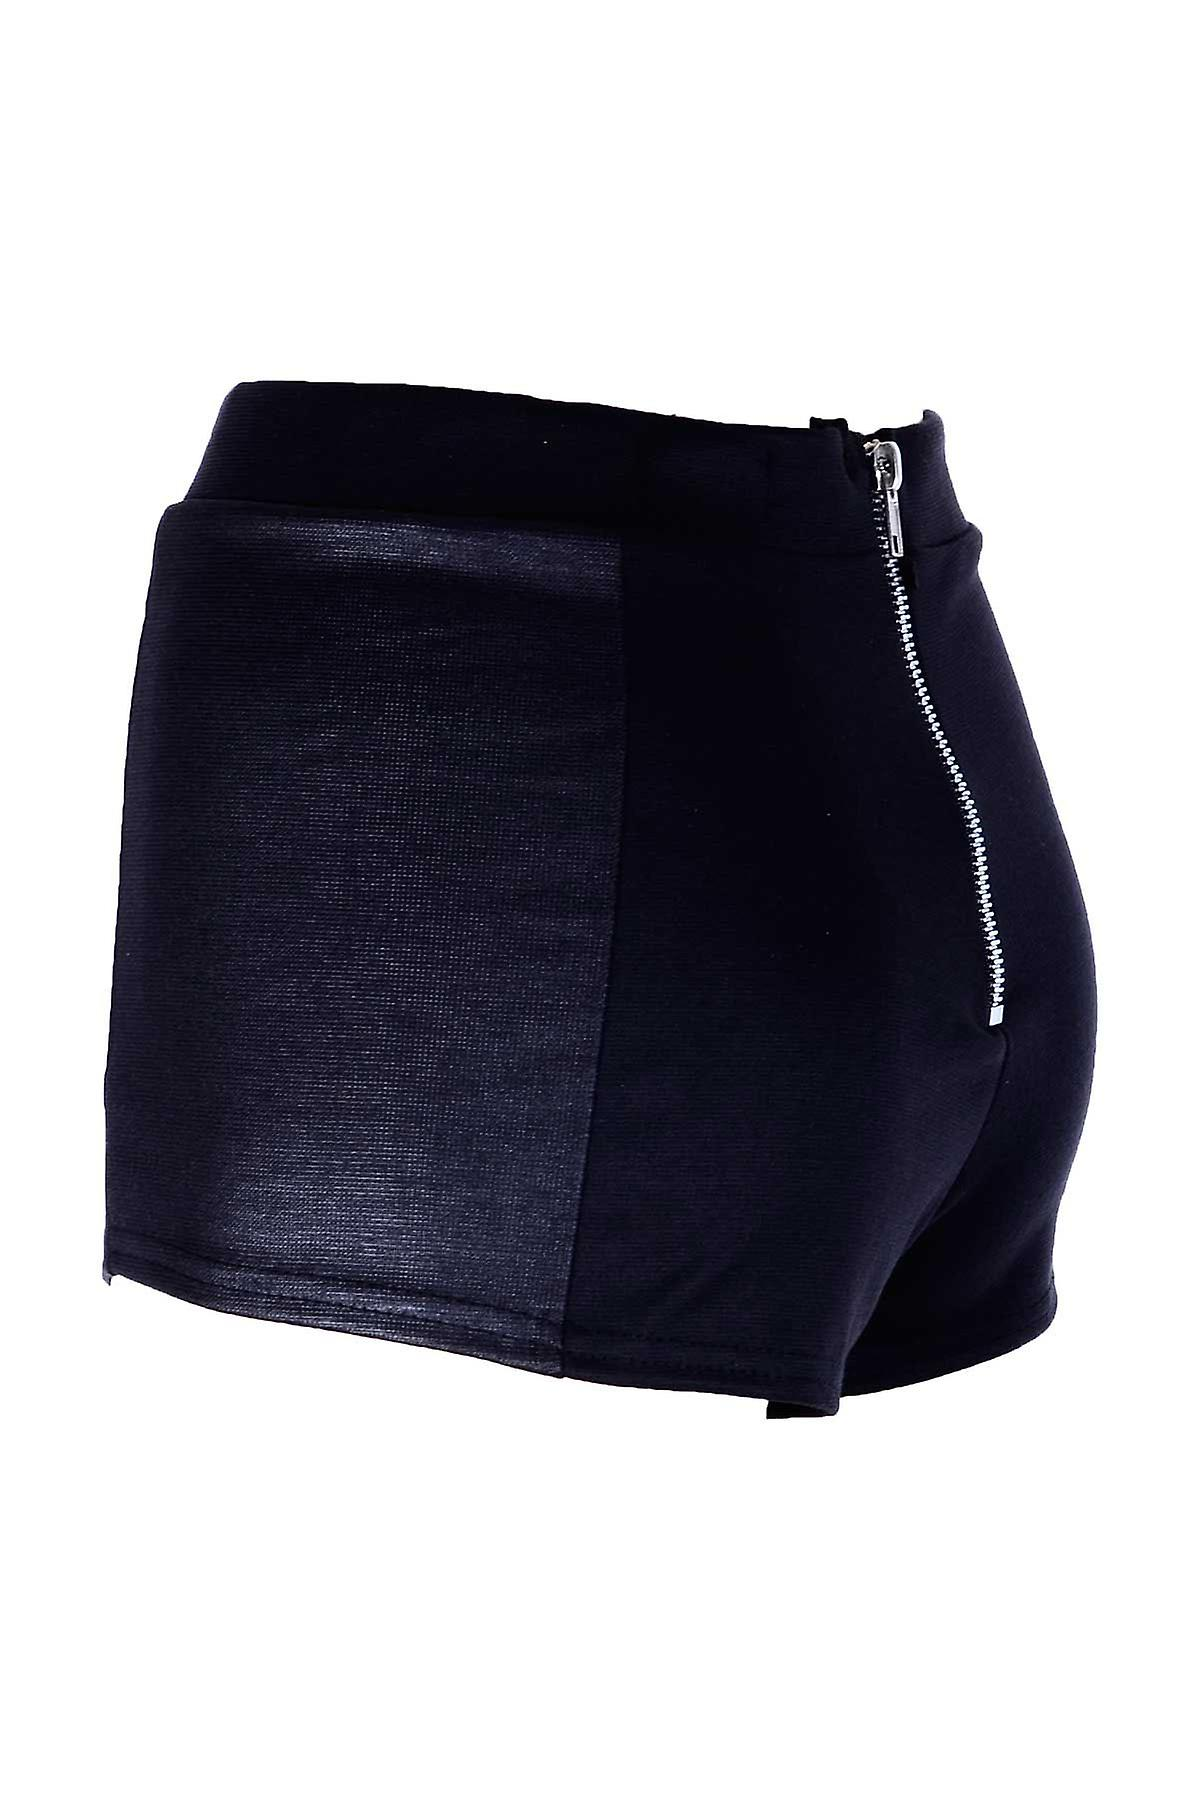 Ladies Black Side Panel PVC Wet Look Womens Mini Shorts Hotpants